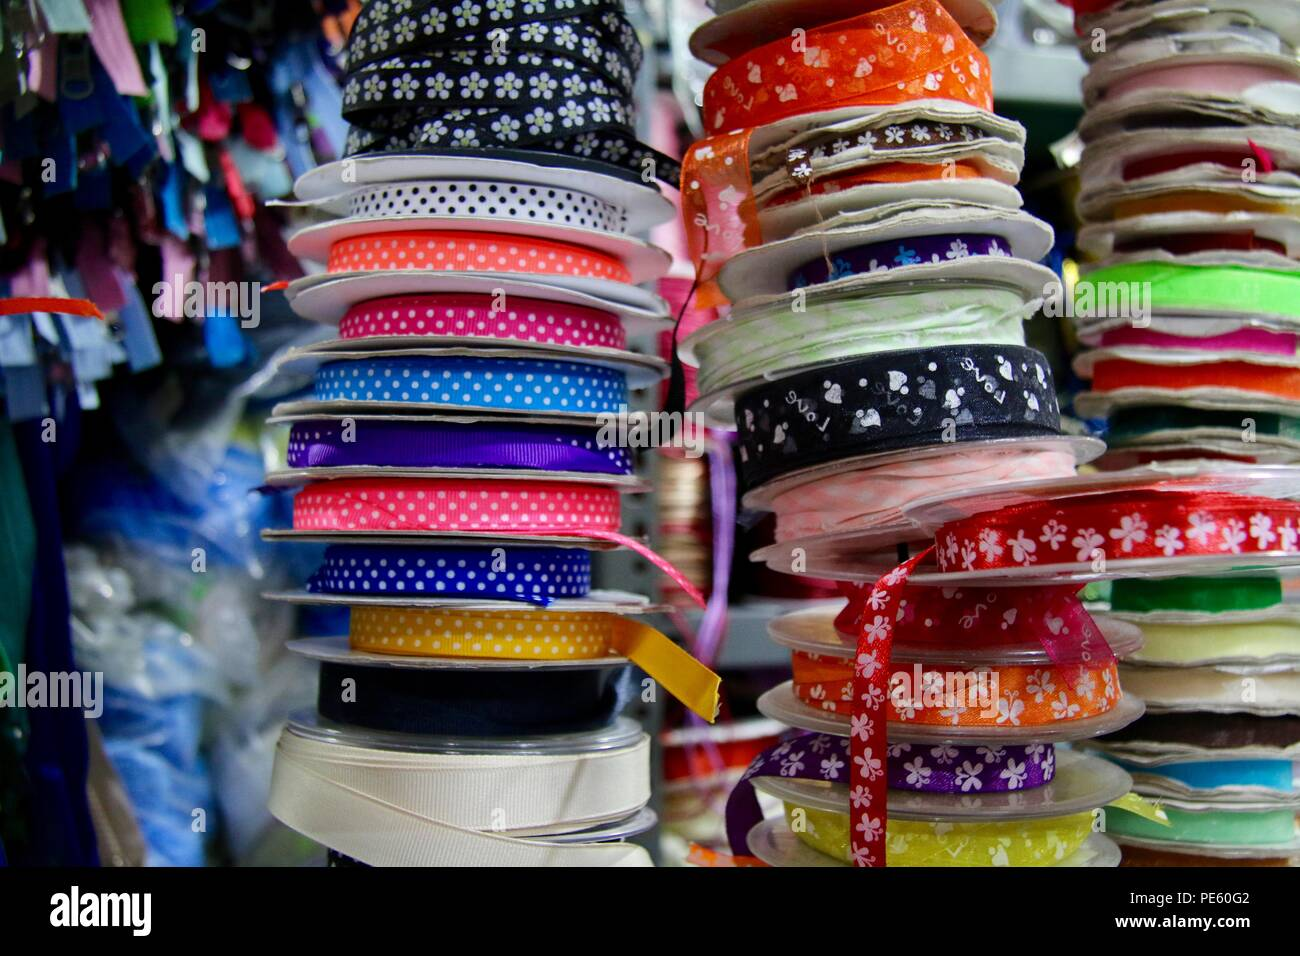 Stacks of multicoloured ribbons of various widths, patterns and textures in a craft market - Stock Image